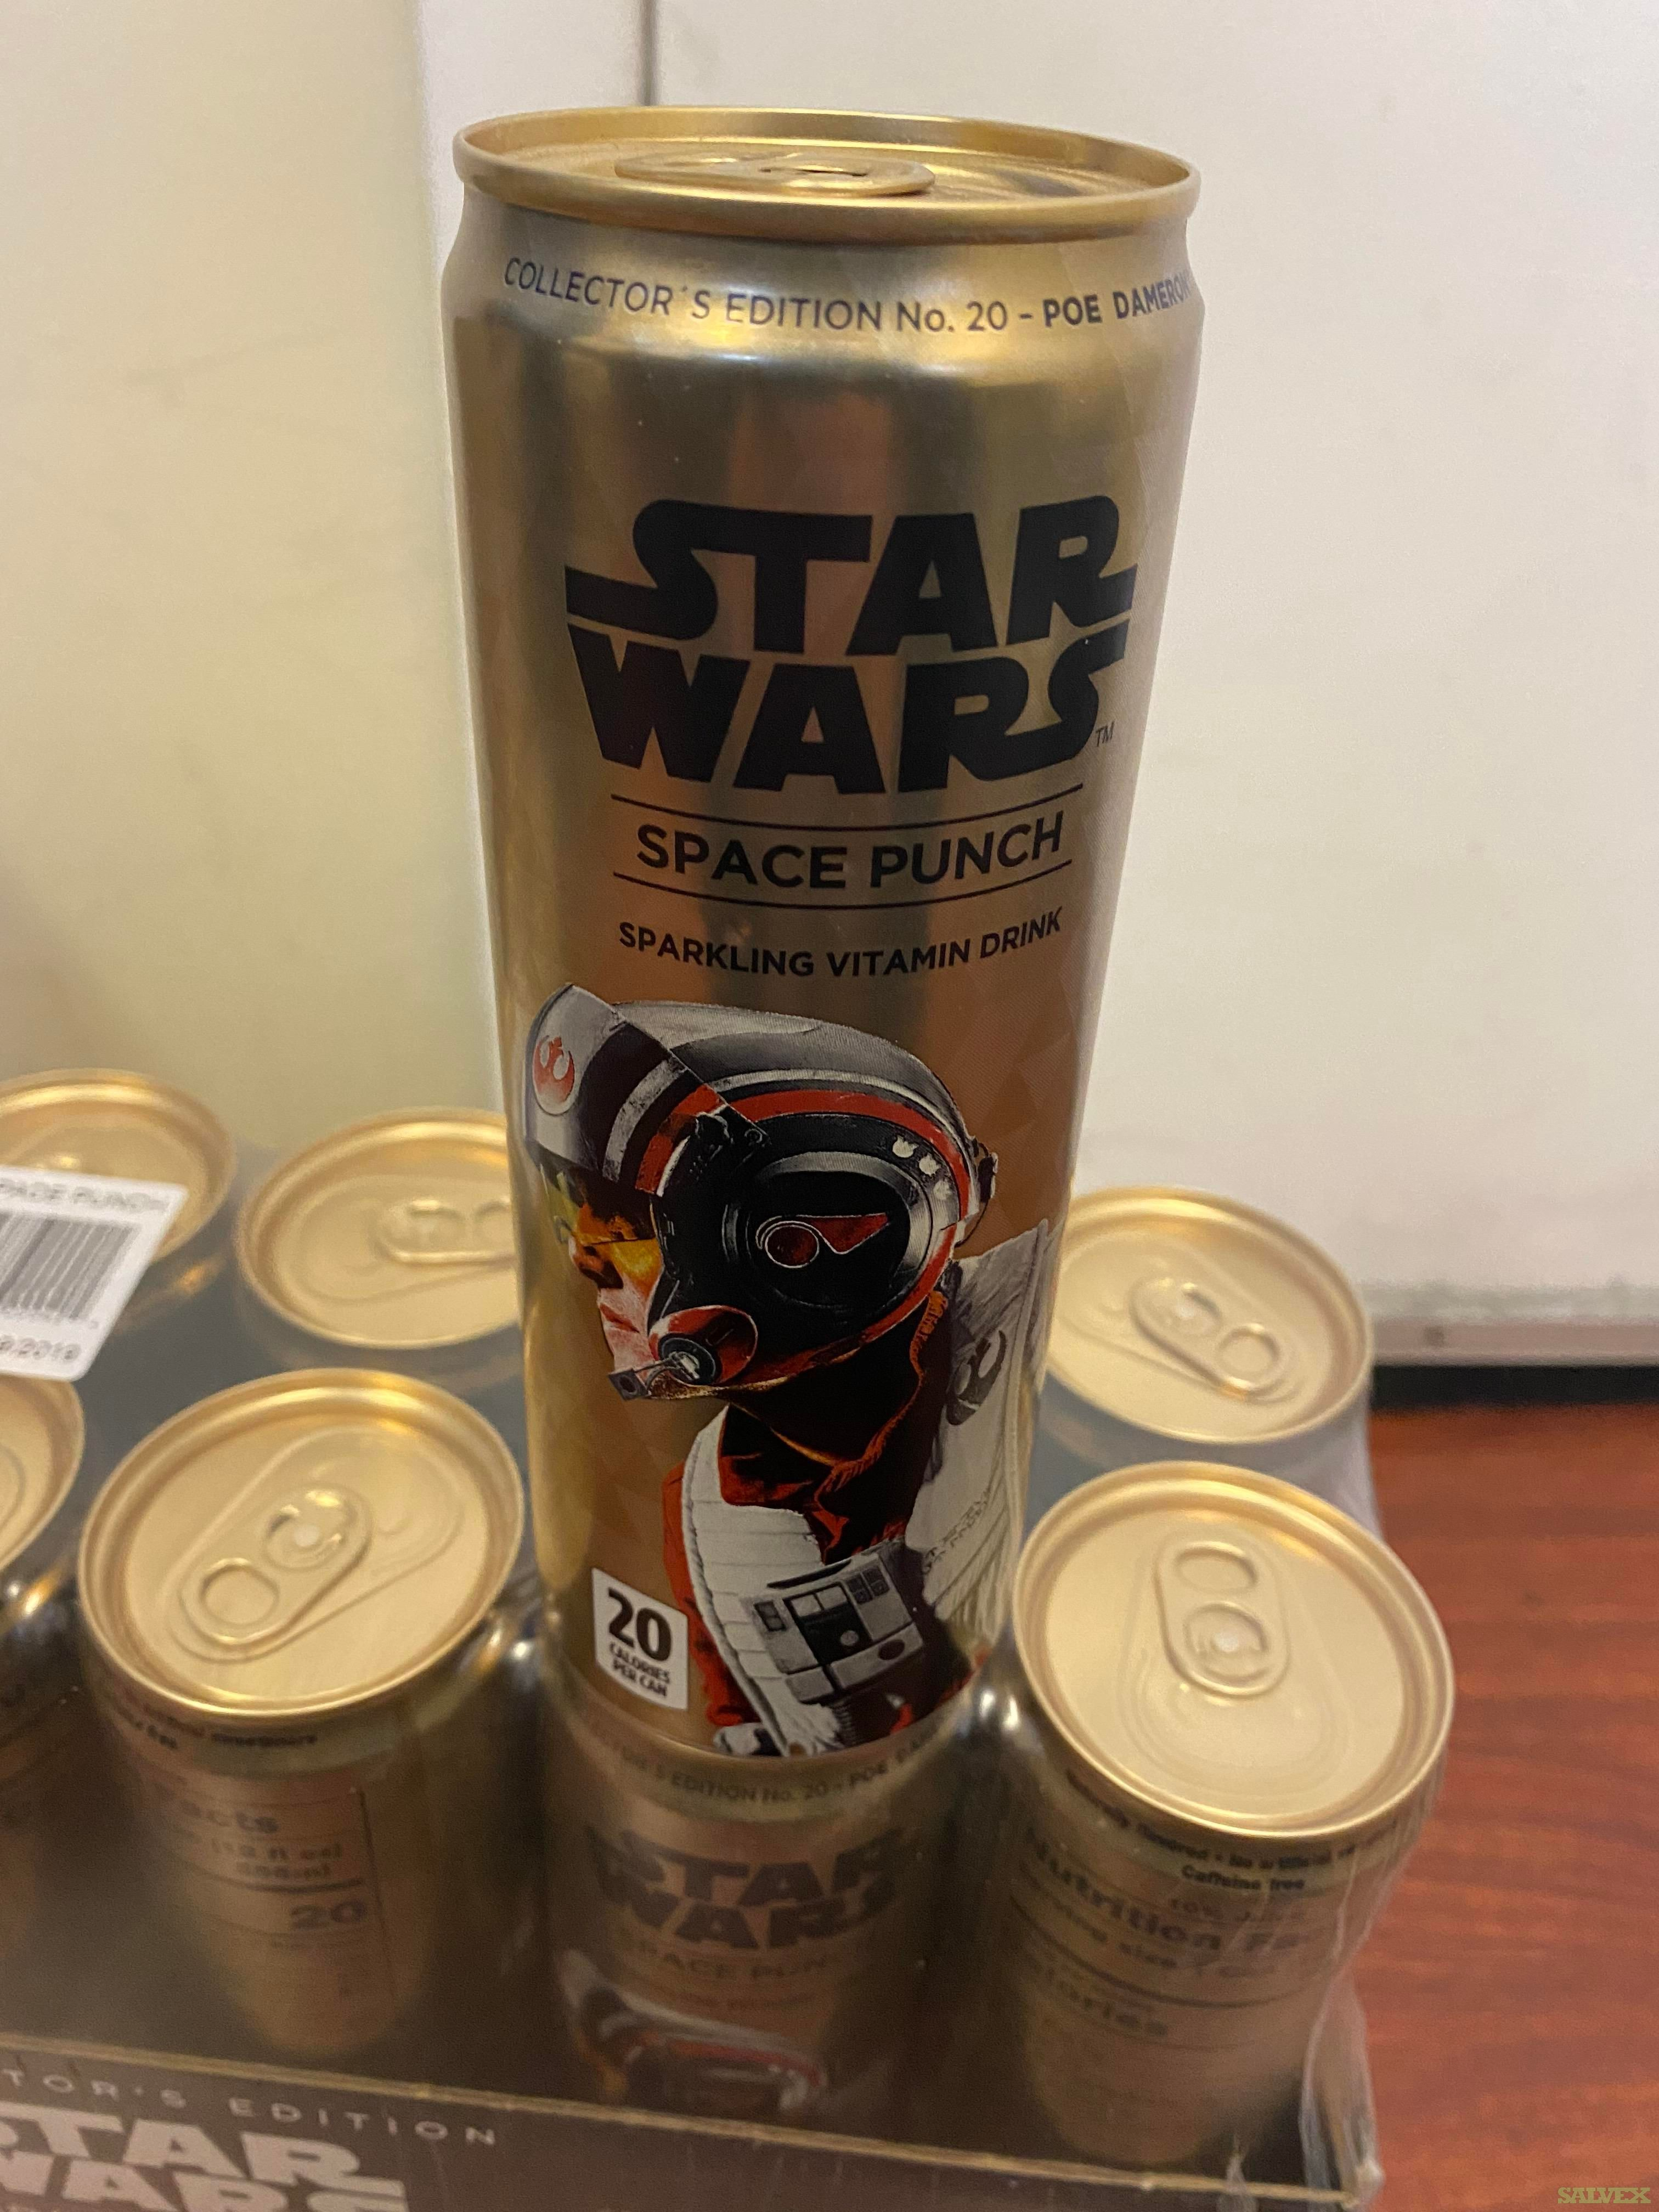 Star Wars Space Punch Sparkling Vitamin Drink (2240 Cases)